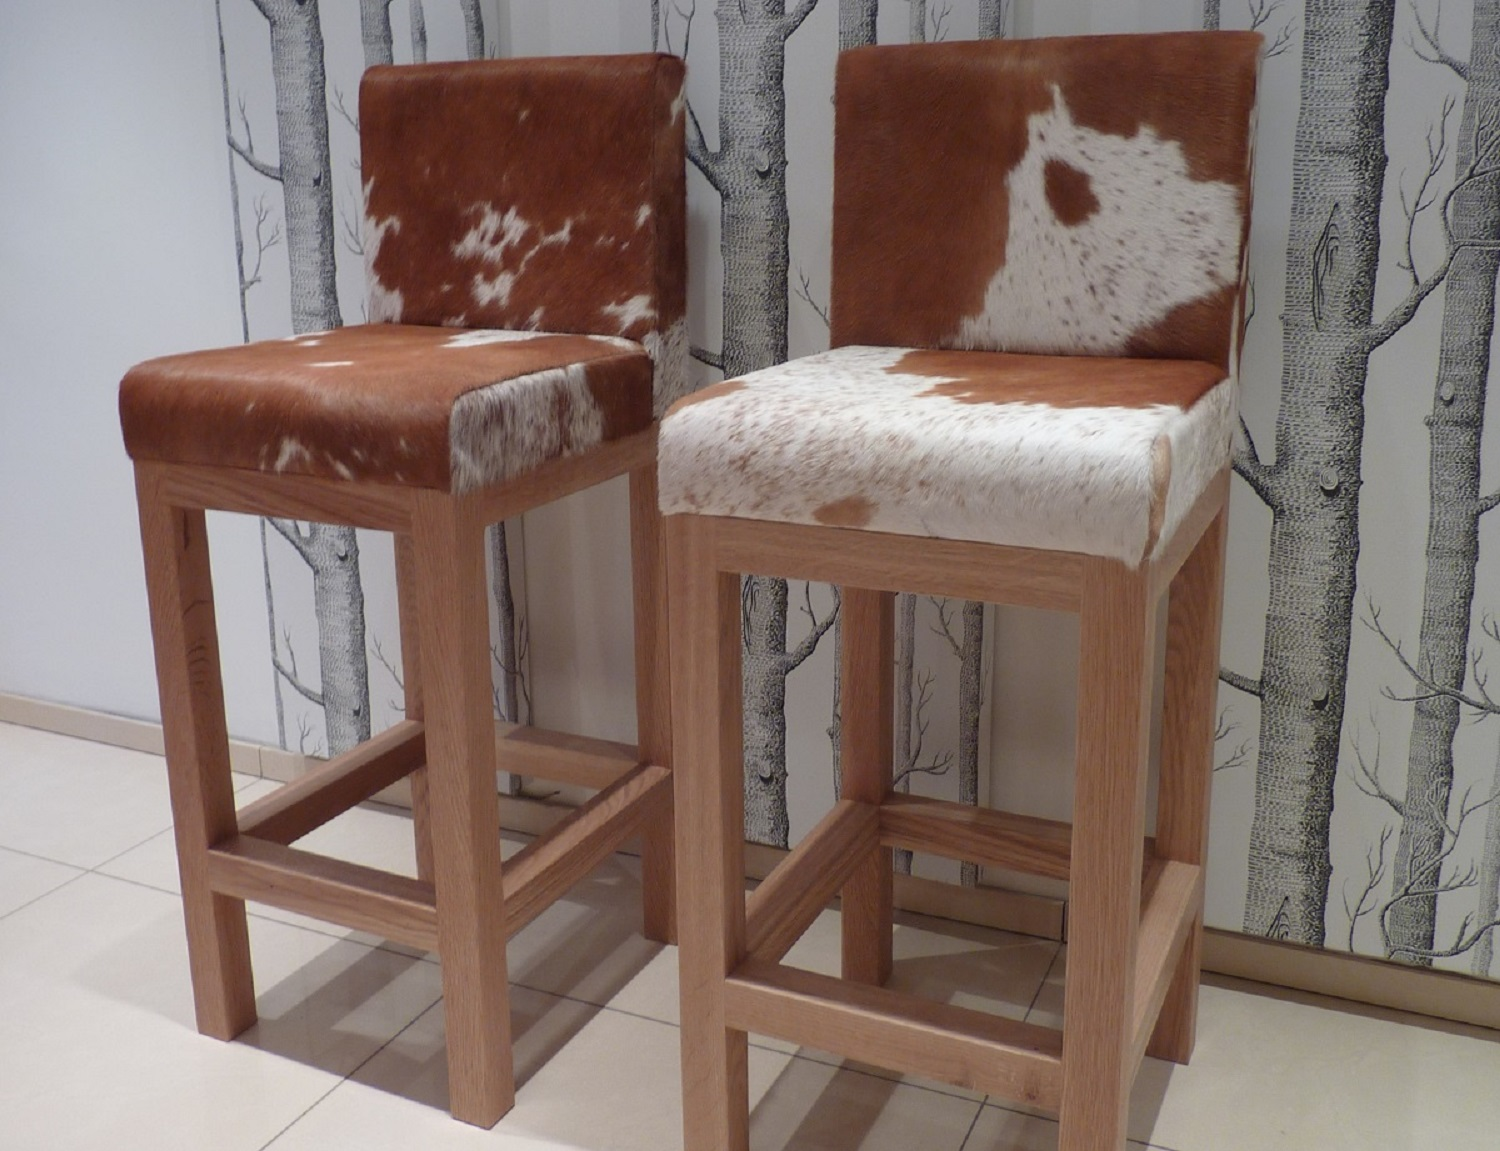 Cowhide Furniture Made To Order By Hide Amp Stitch Uk Based